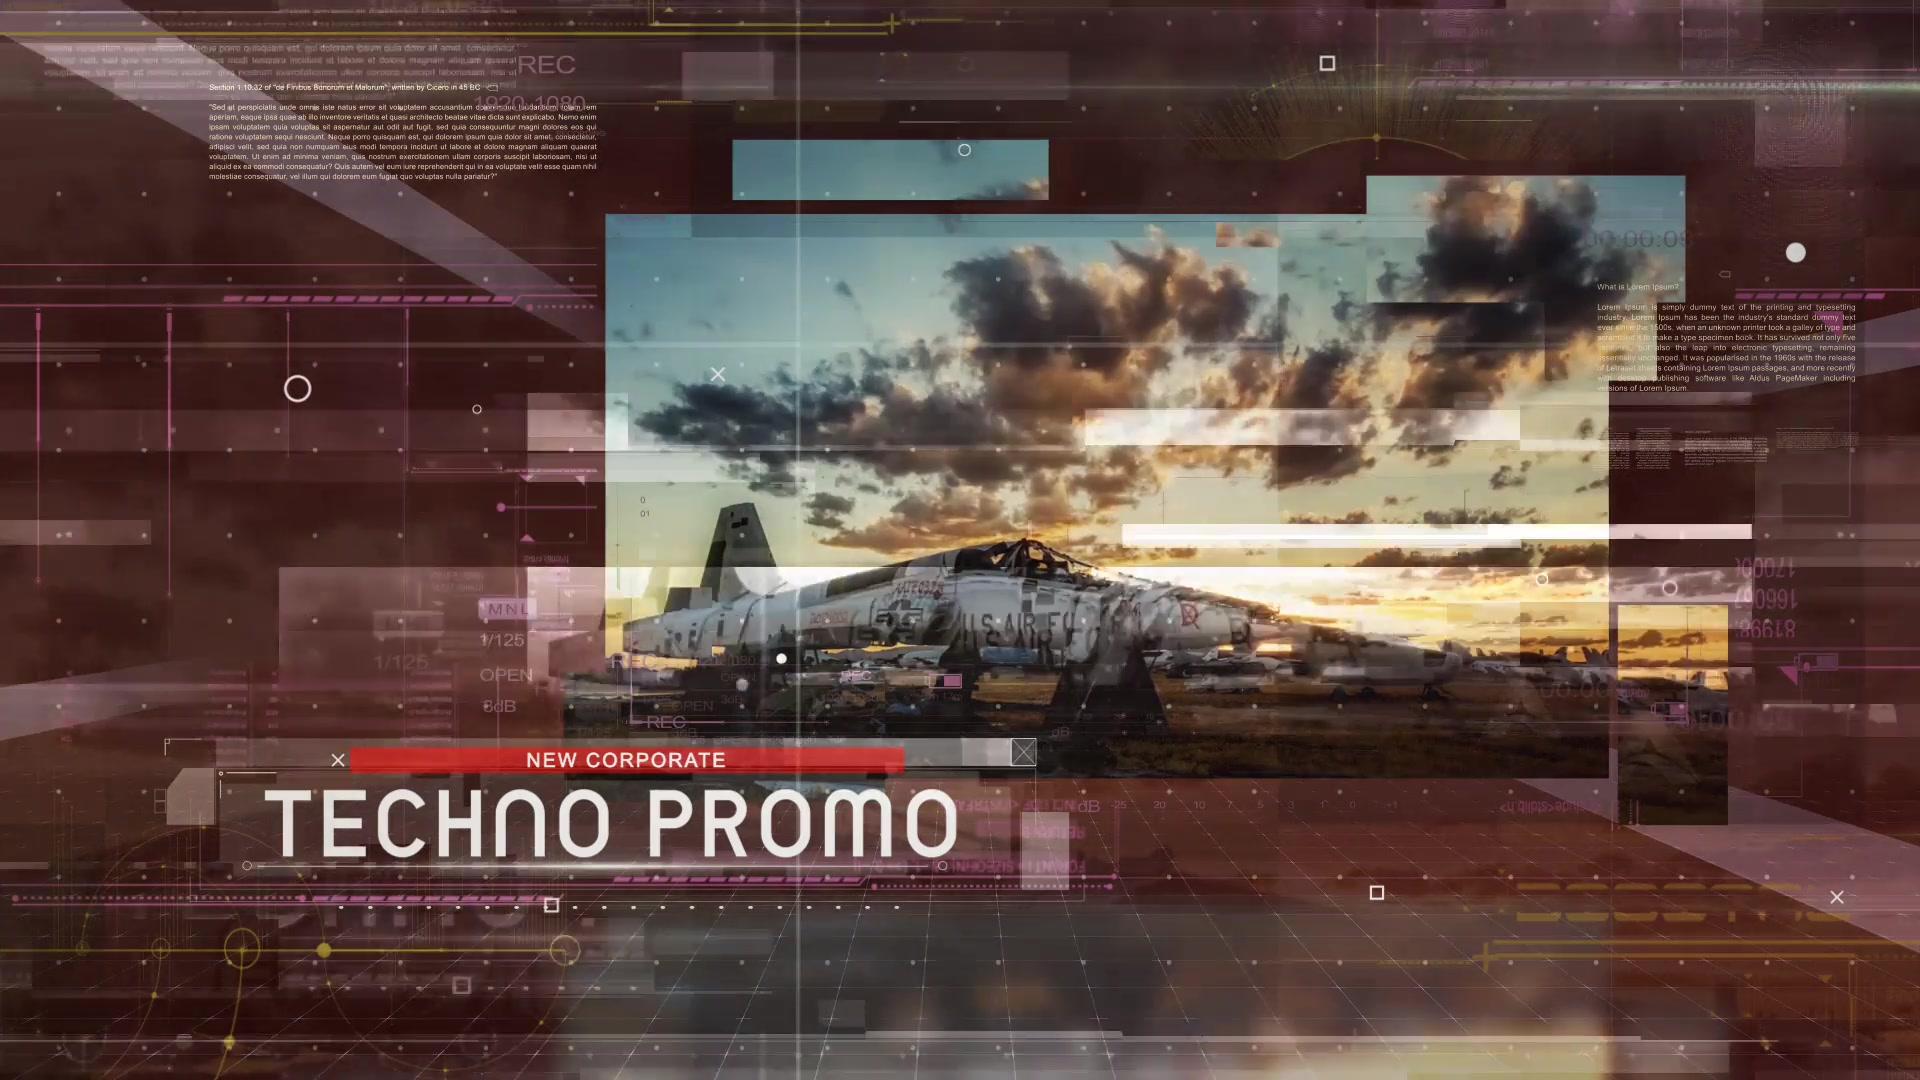 Technology Cinematic Promo - Download Videohive 20714194